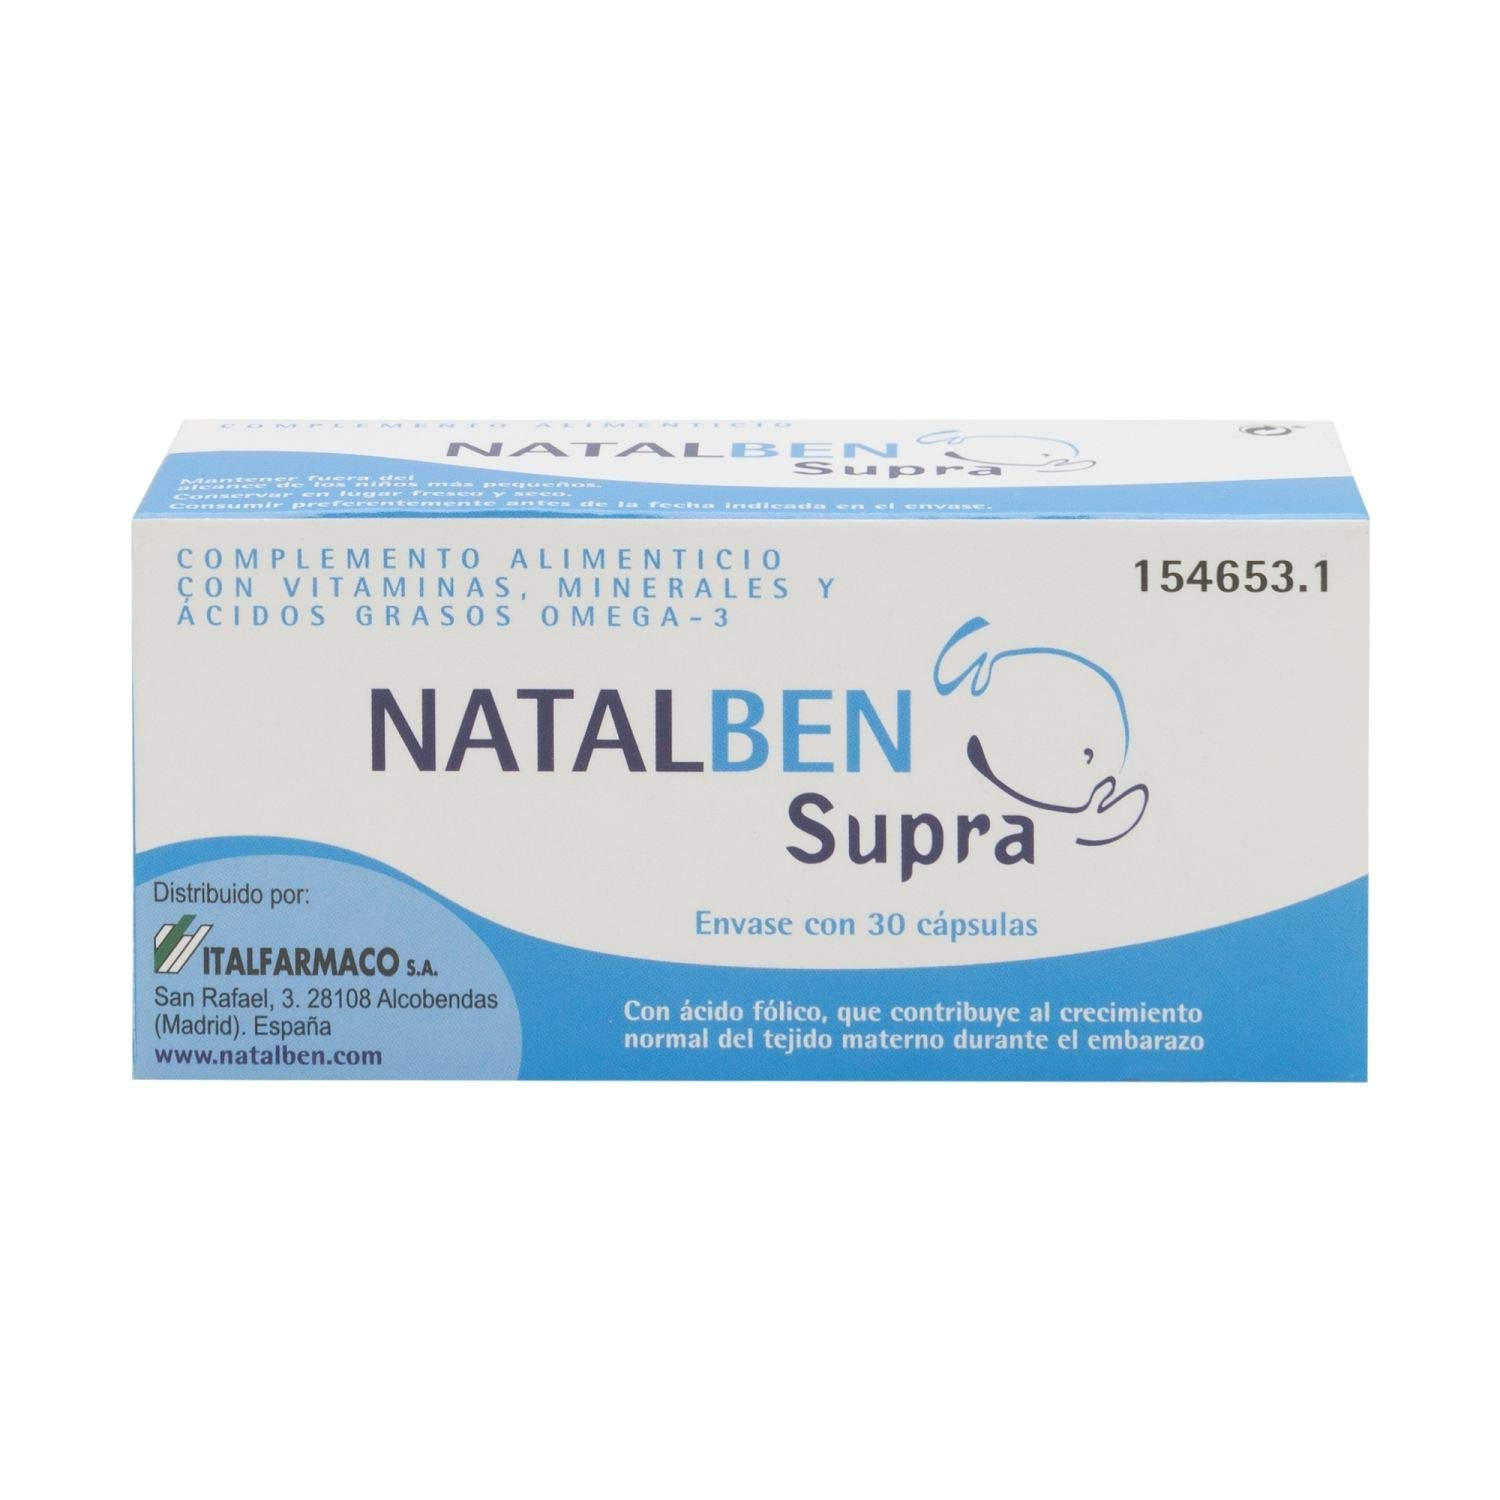 Amazon.com: Natalben Supra 30 caps. - Food Supplement - Post Natal Supplement - Vitamins and Minerals: Health & Personal Care